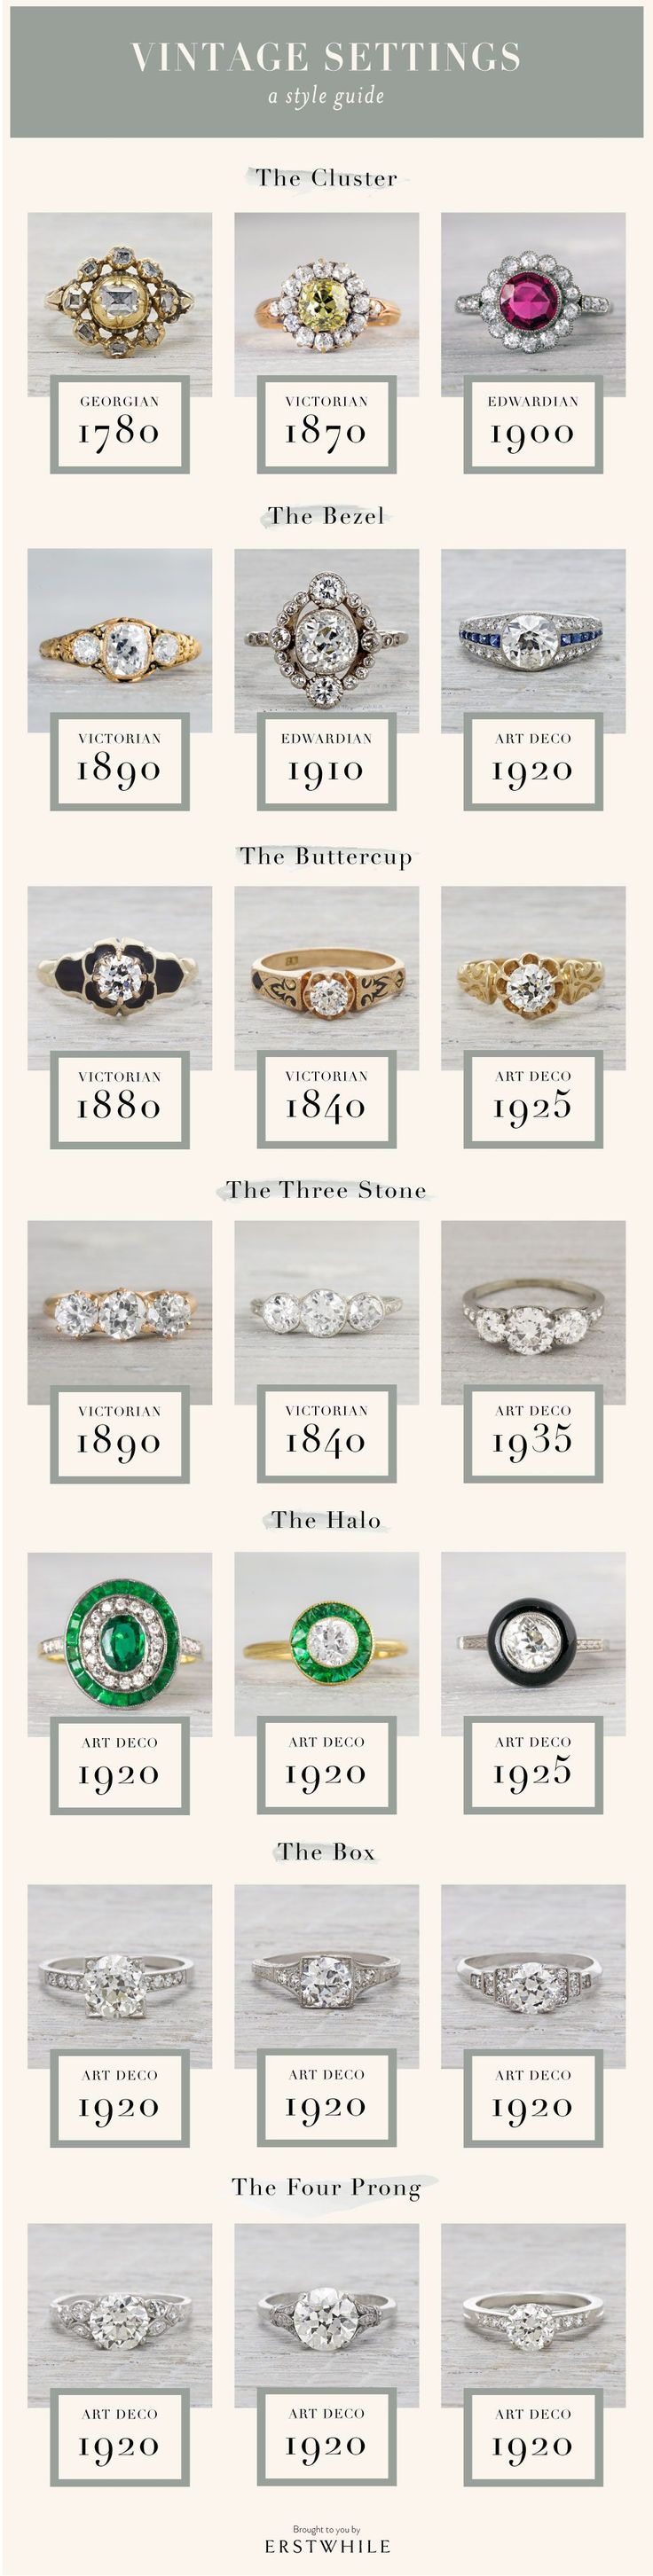 vintage engagement ring settings guide GAHHHH LOVE LOVE LOVE